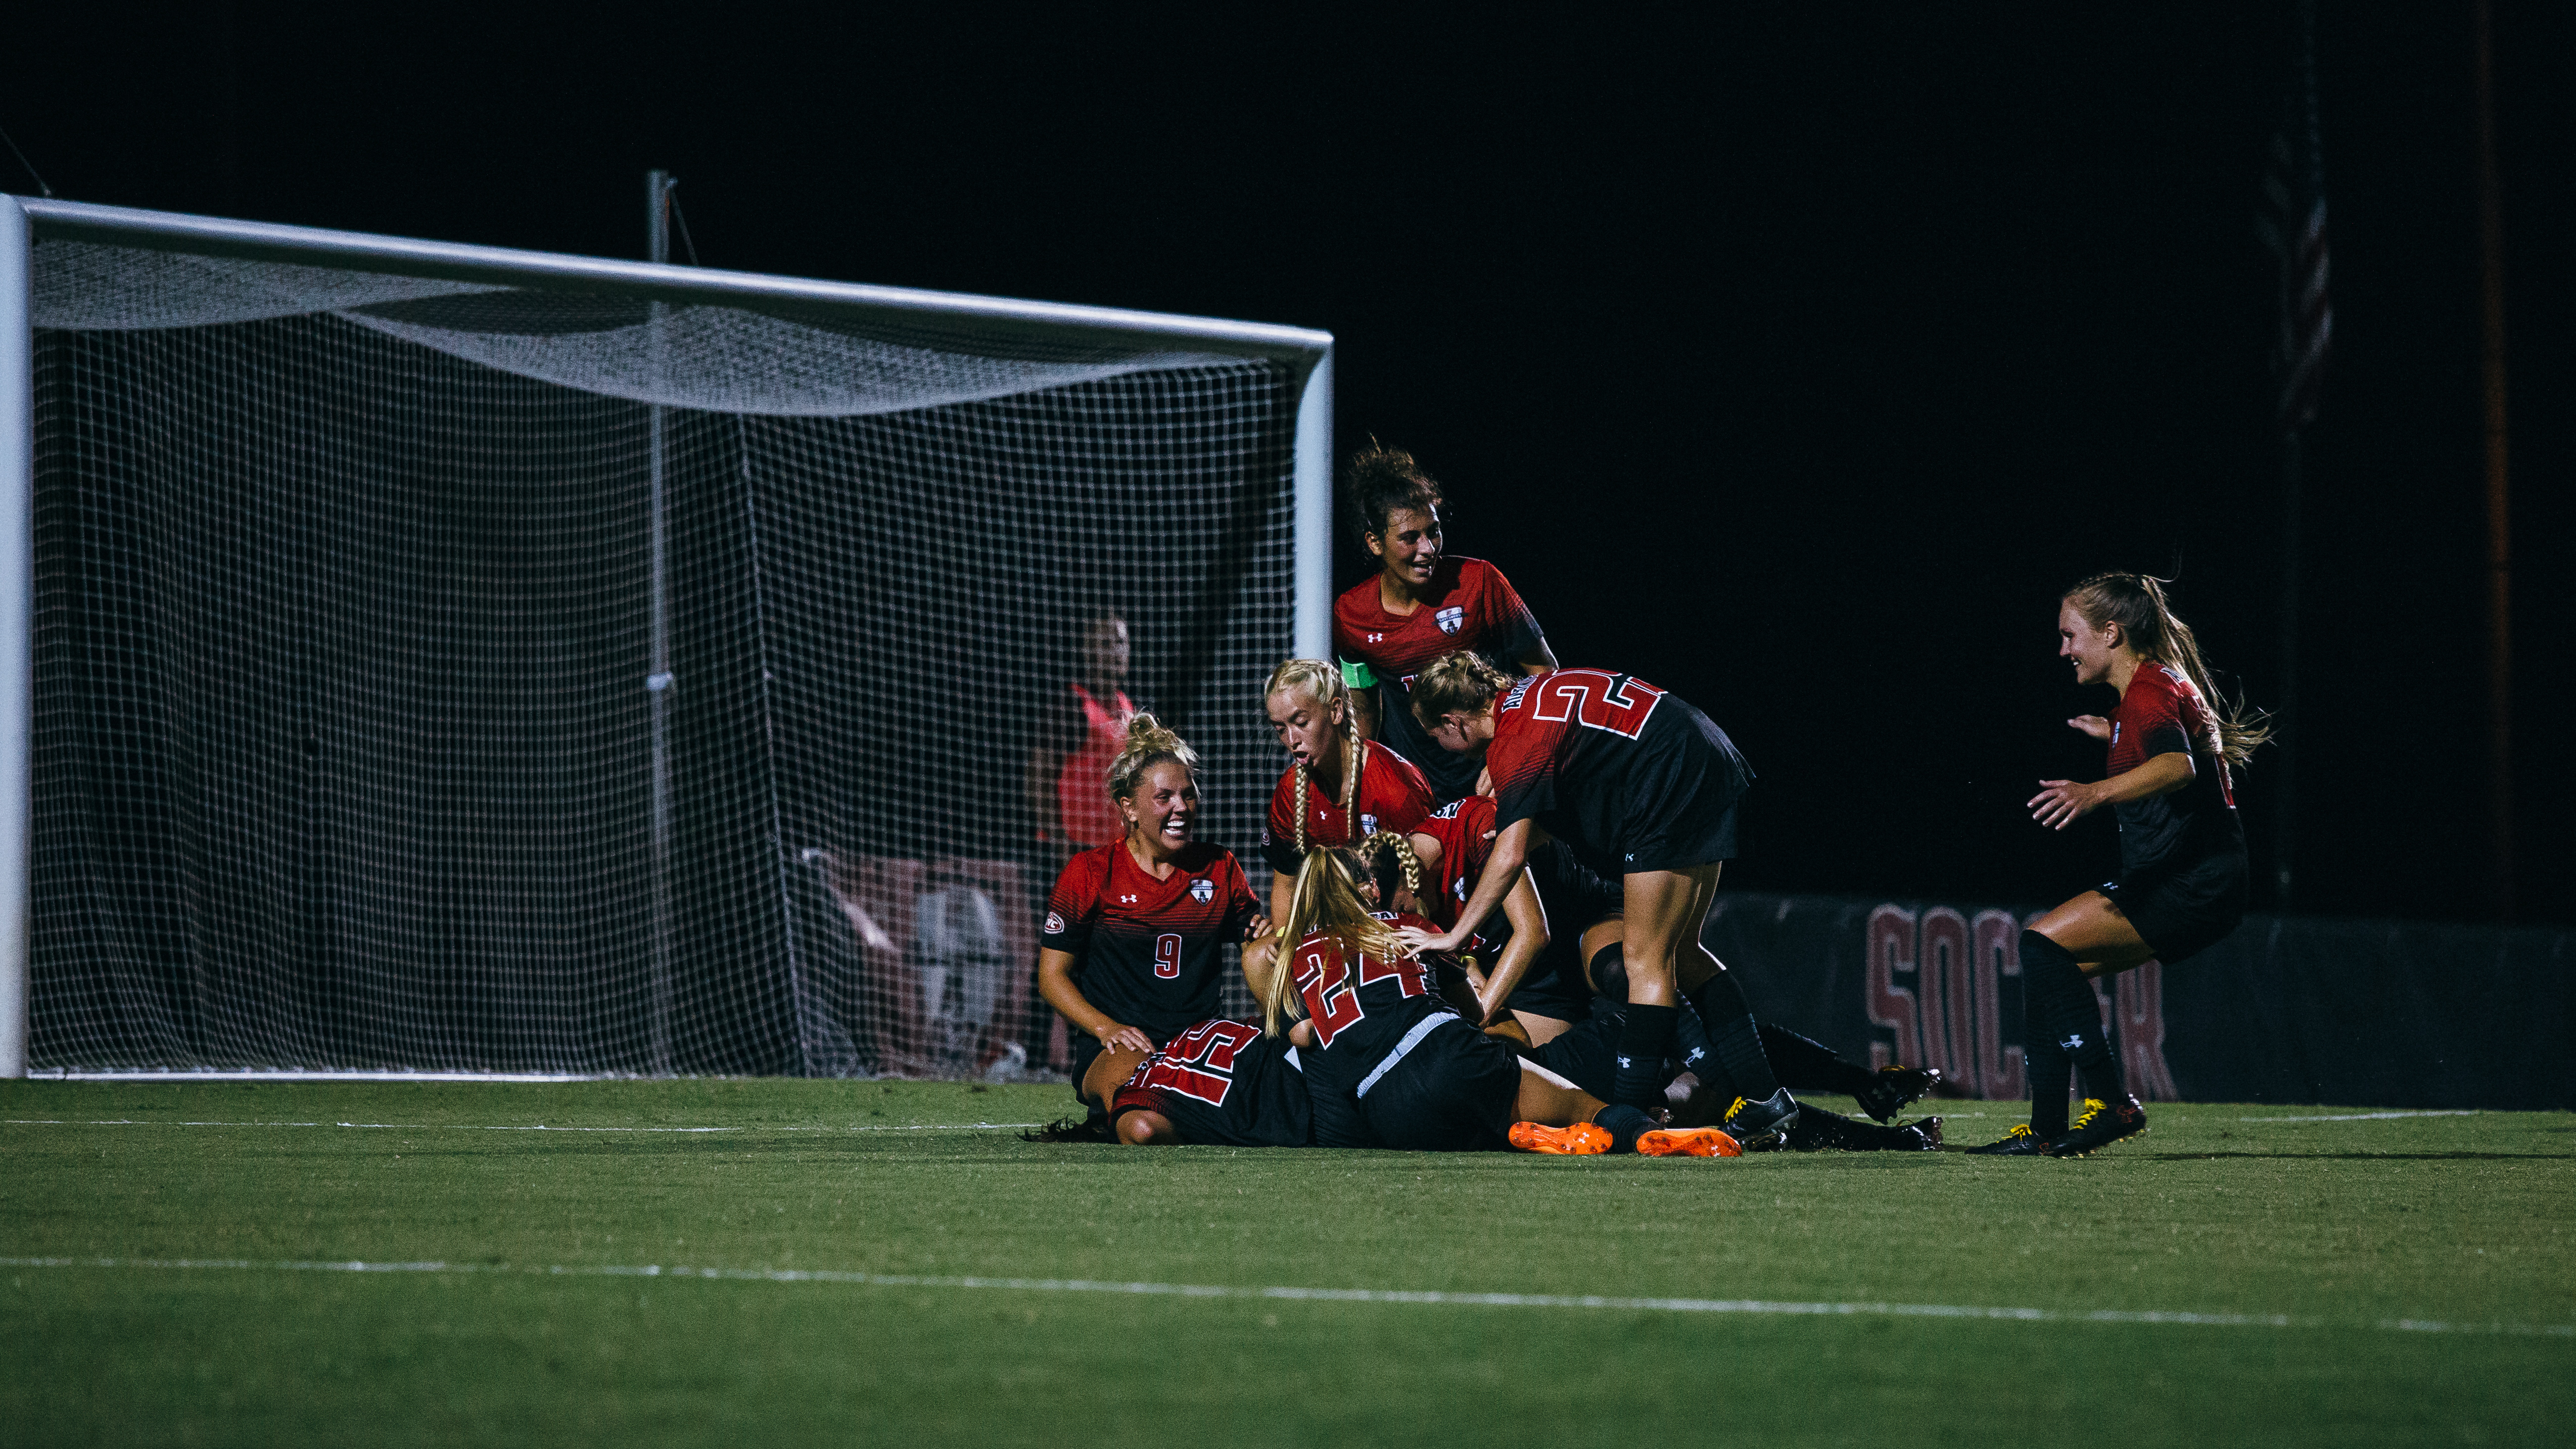 The Governors soccer program celebrates during a 2019 match against Southeast Missouri State. THE ALL STATE ARCHIVES